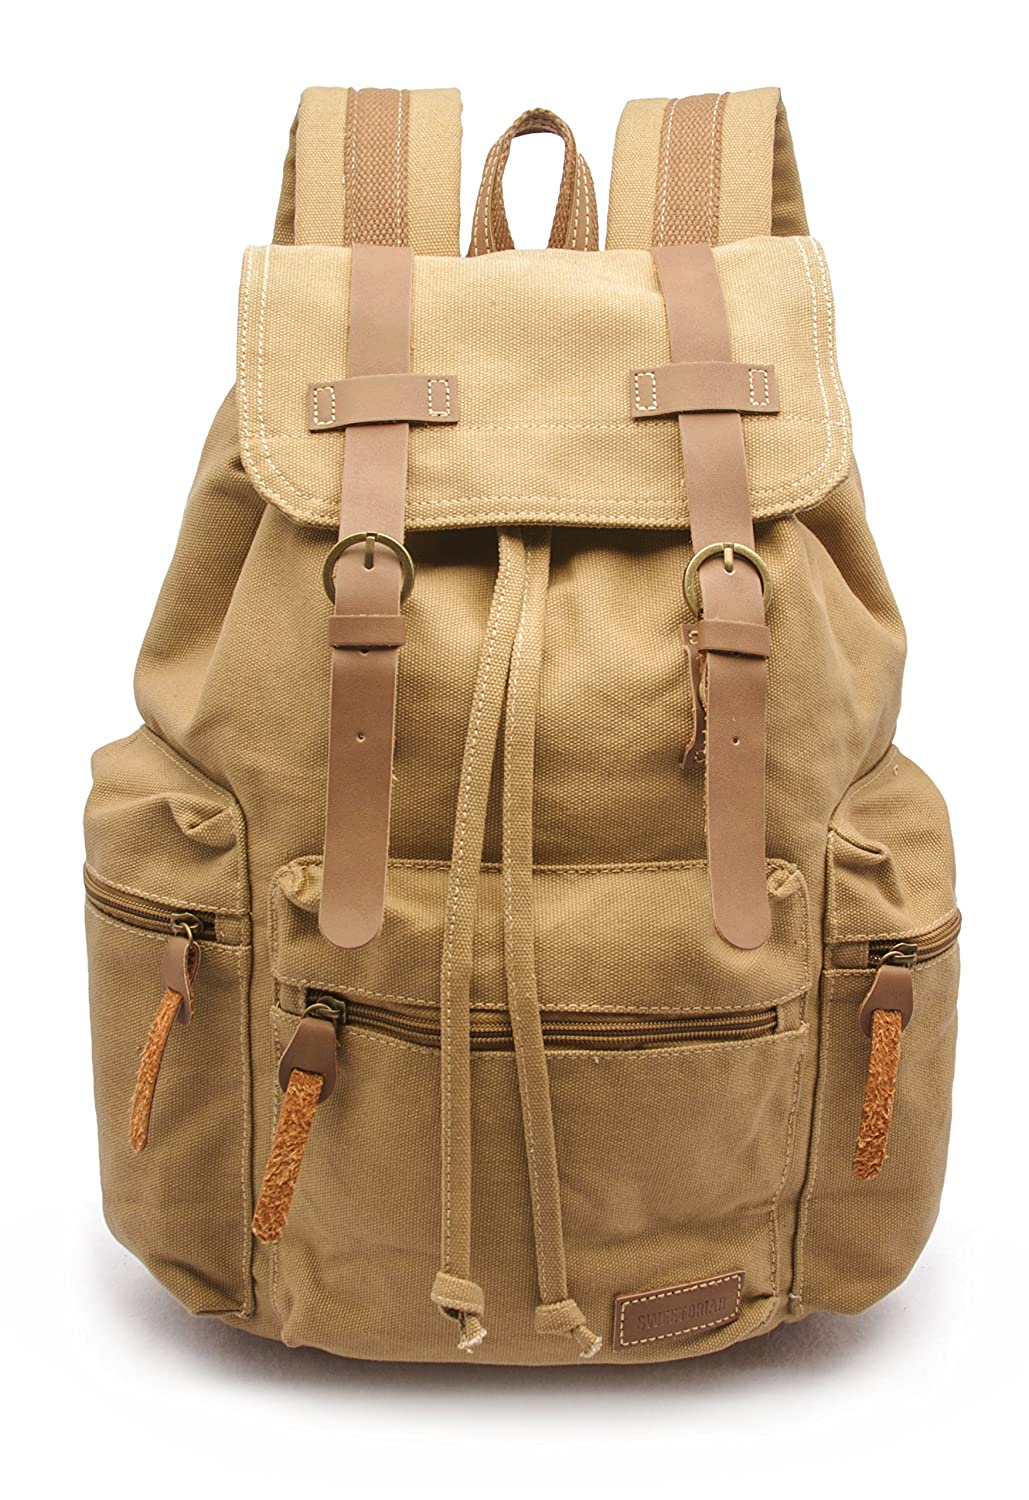 Sweetbriar Vintage Canvas Backpack, Tan – Protects Laptops up to 15.6 Inches